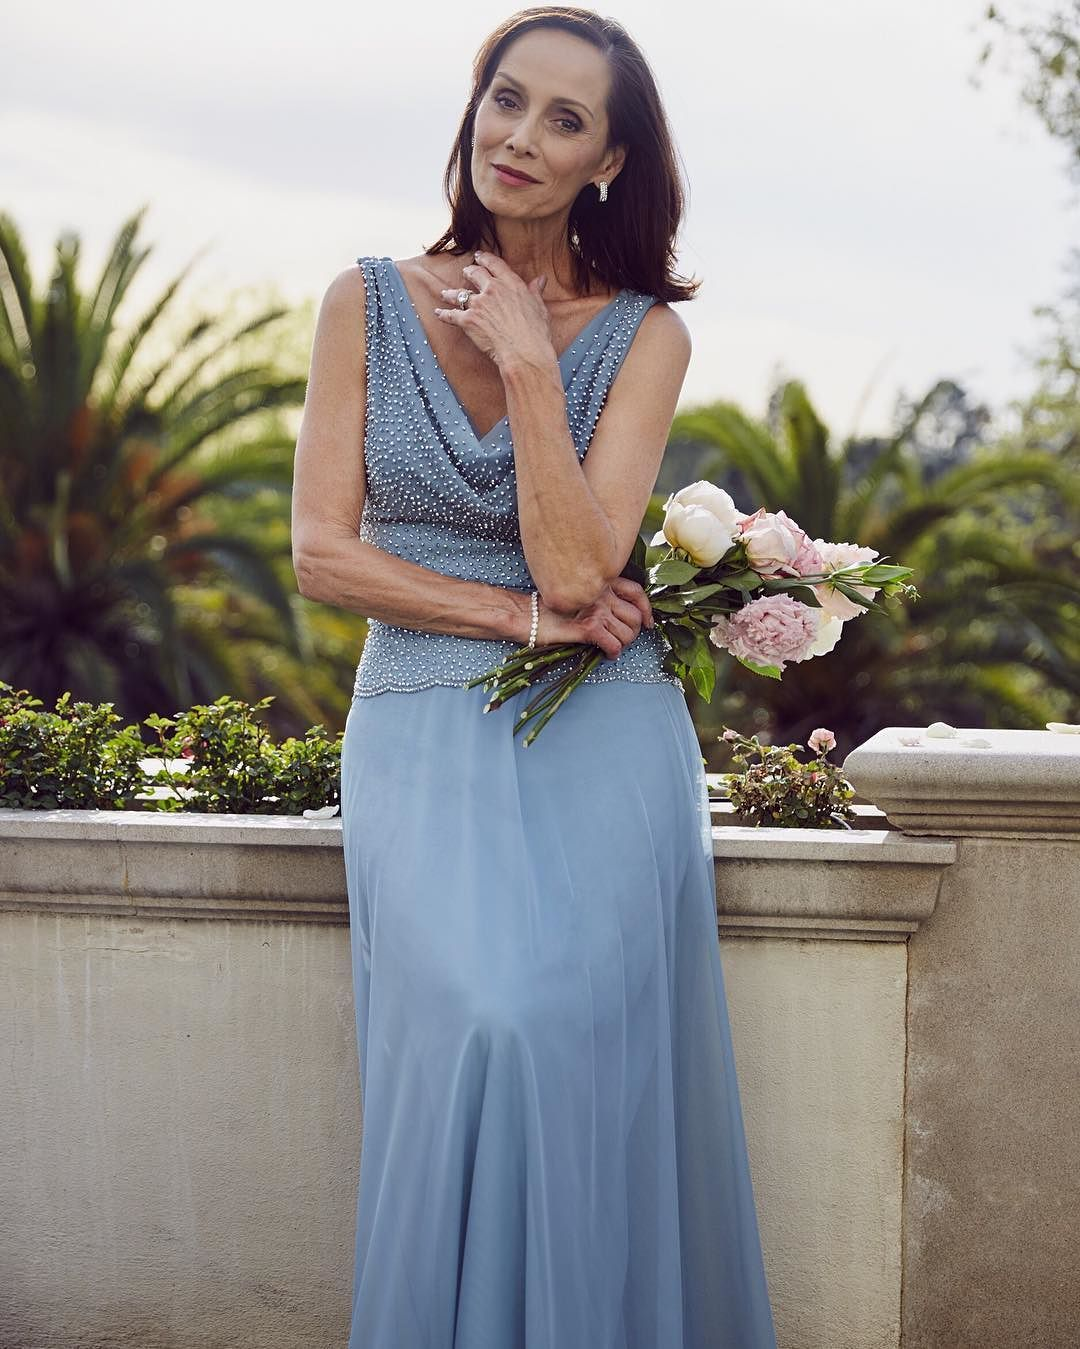 Wedding dresses for mother of the bride  A look your mom will love Tap the link in our profile to shop the